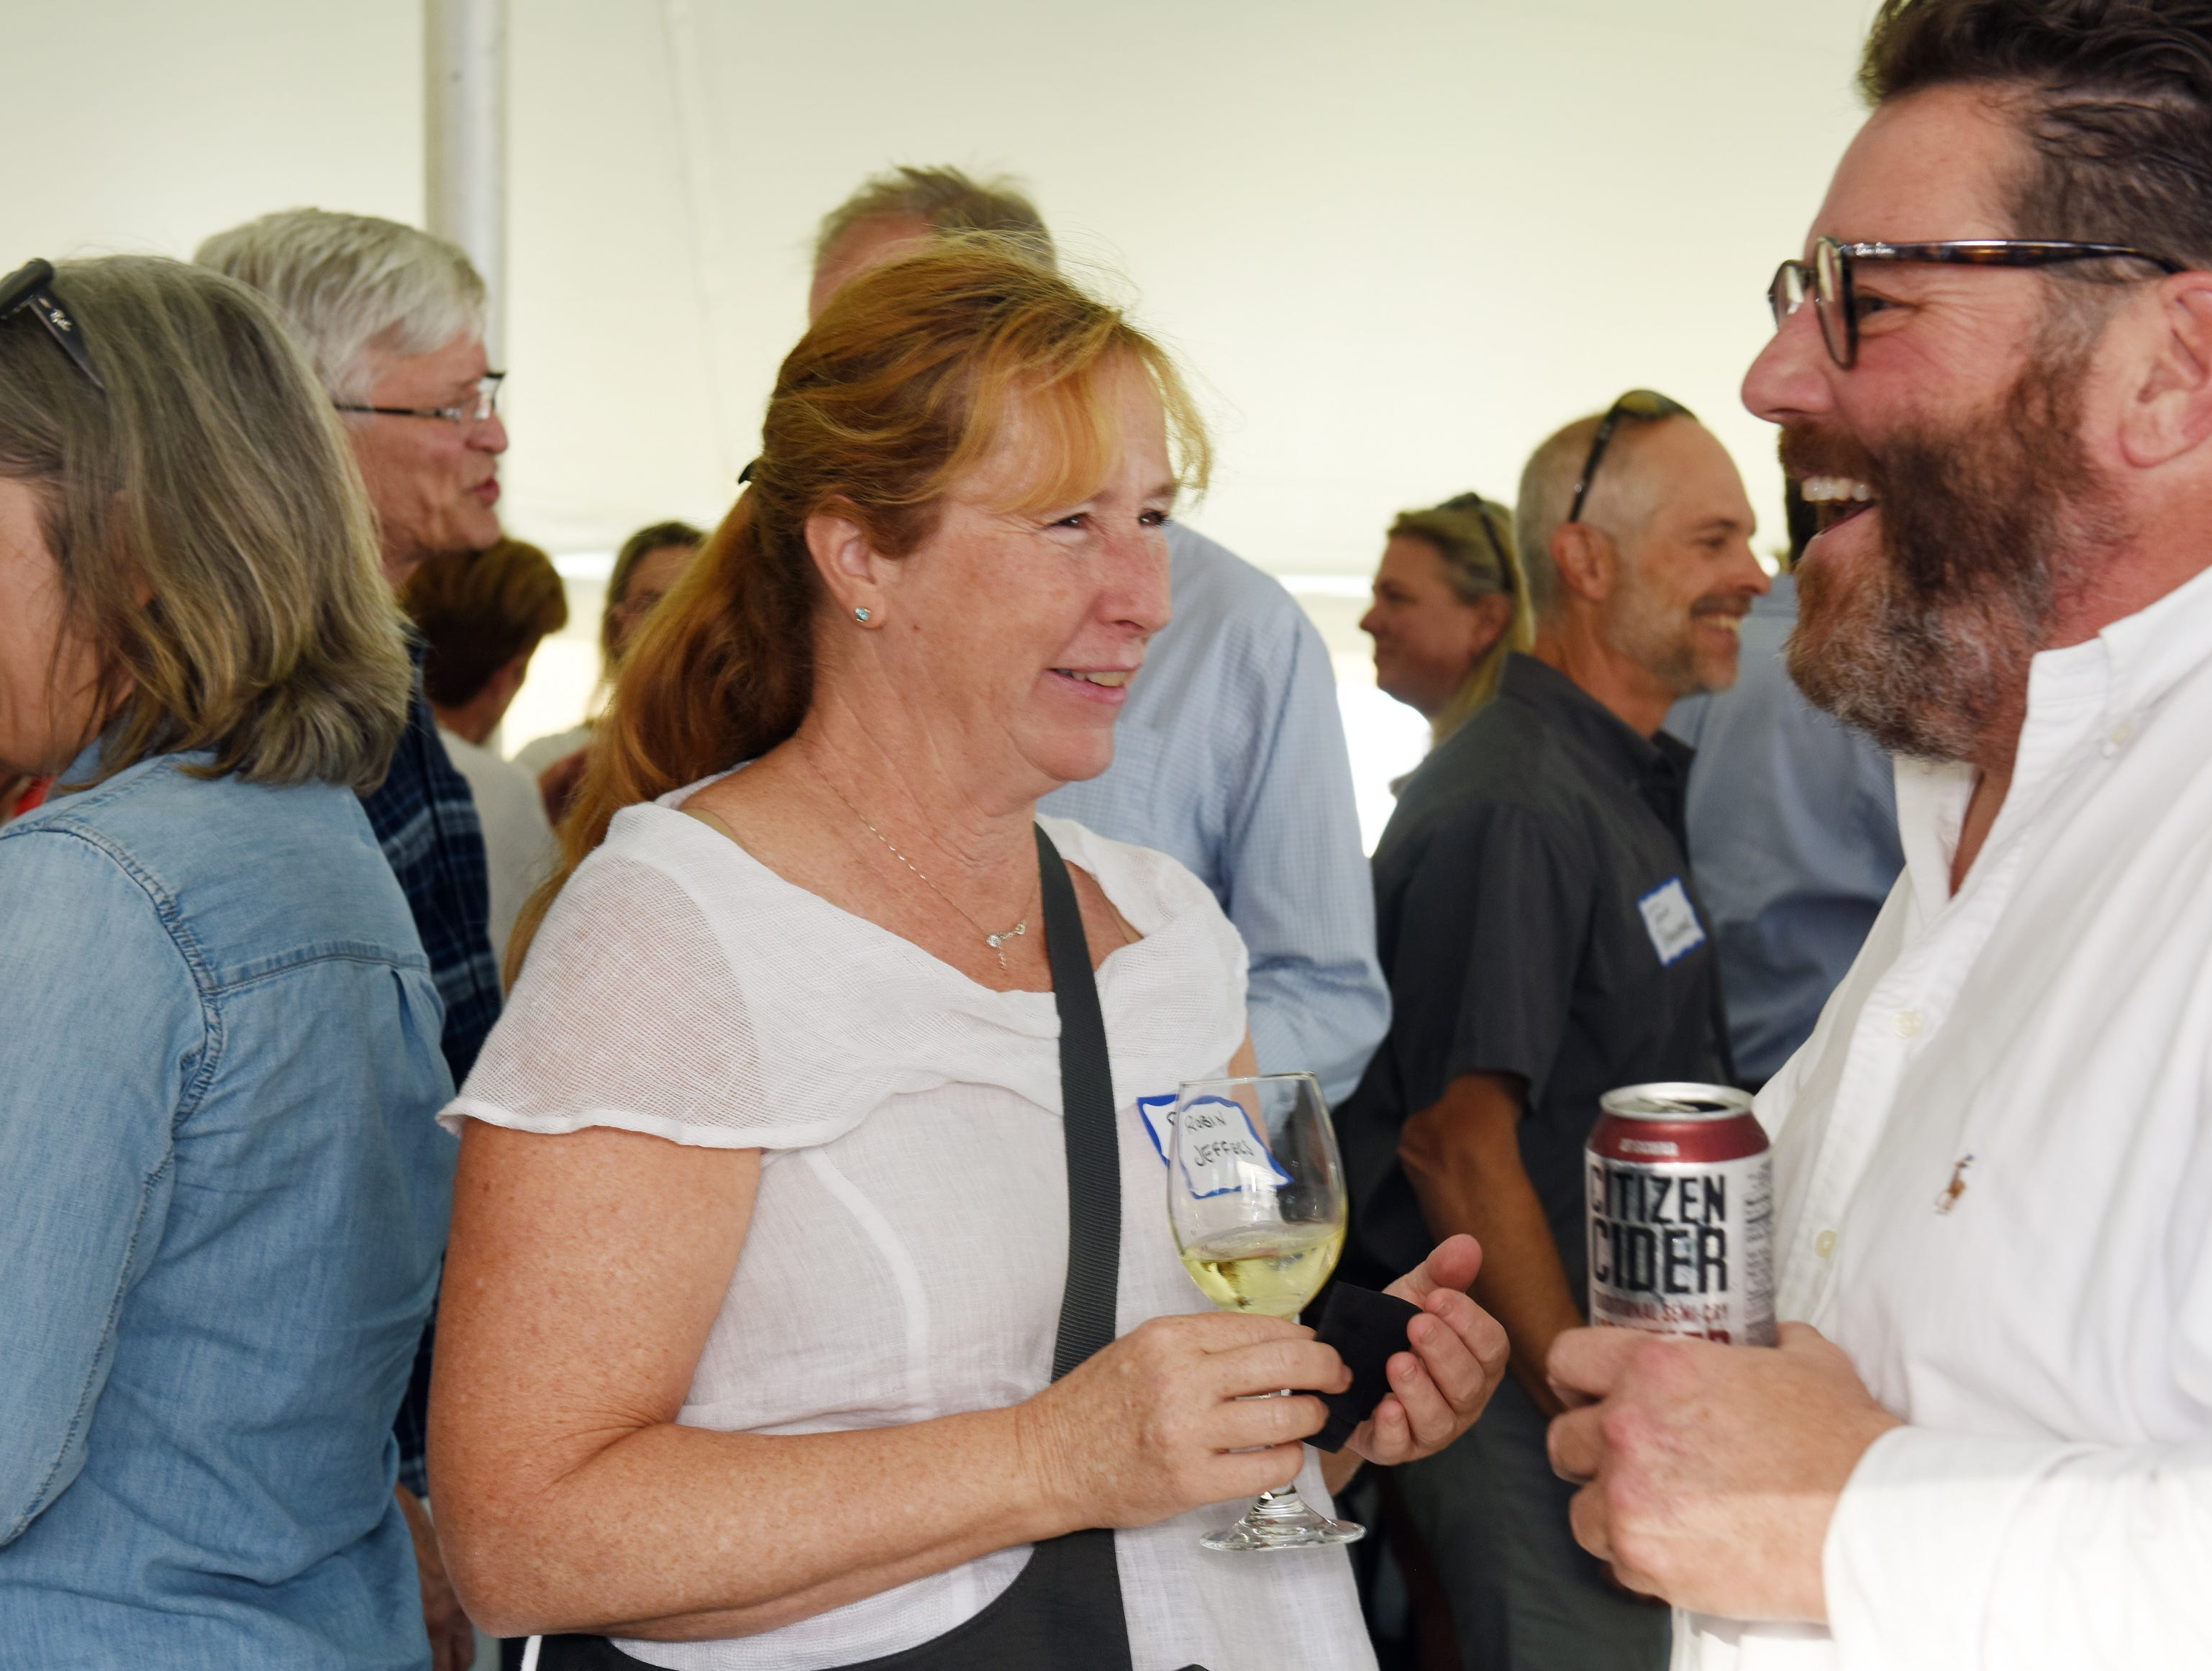 Robin Jeffers of SDI Ireland and Chris Senesac of C&M Custom Homes attend the Coldwell Banker Hickok & Boardman 60th Anniversary on September 13, 2018, with current and past agents and community leaders in Burlington, VT.